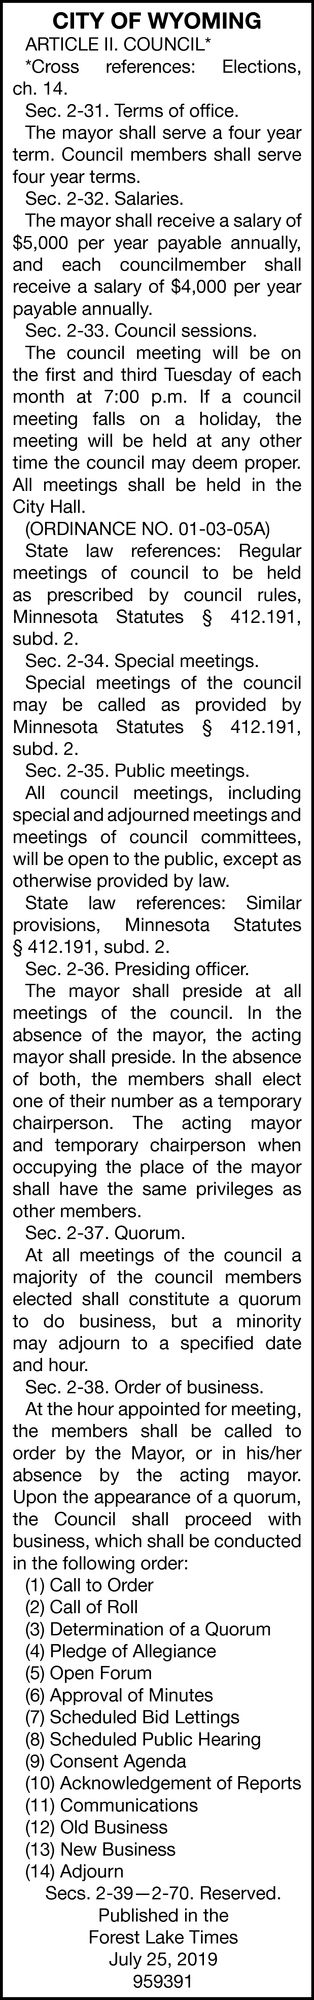 Article II. Council*